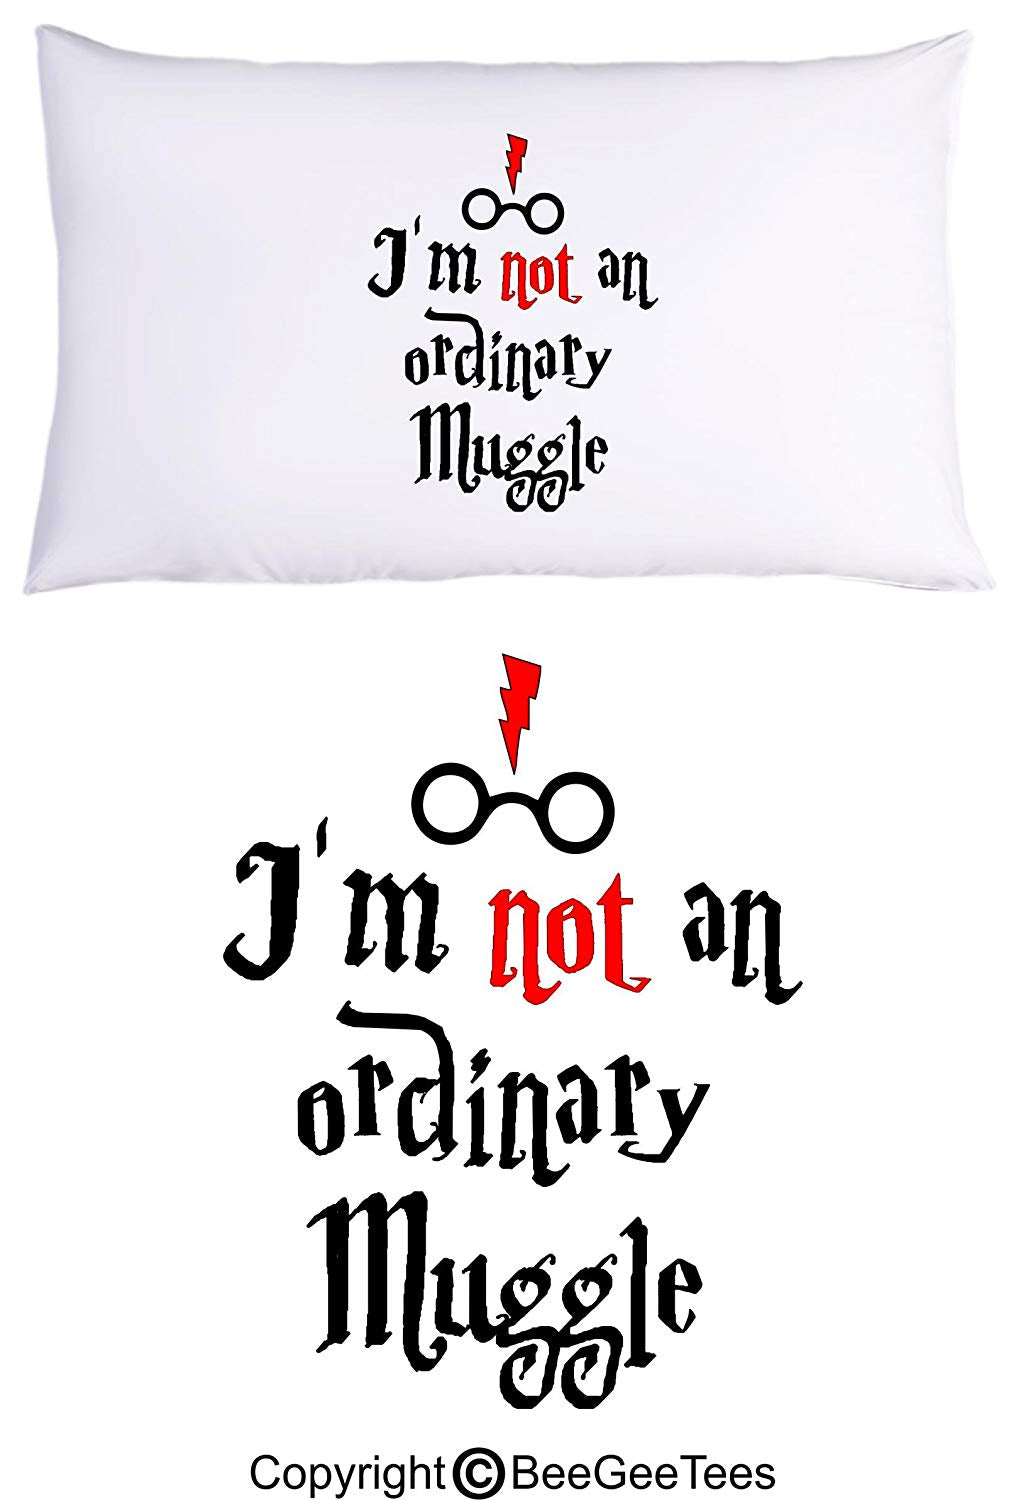 I'm Not An Ordinary Muggle Funny Harry Potter Inspired Hogwarts Wizard Pillowcase by BeeGeeTees (1 Queen Pillowcase)